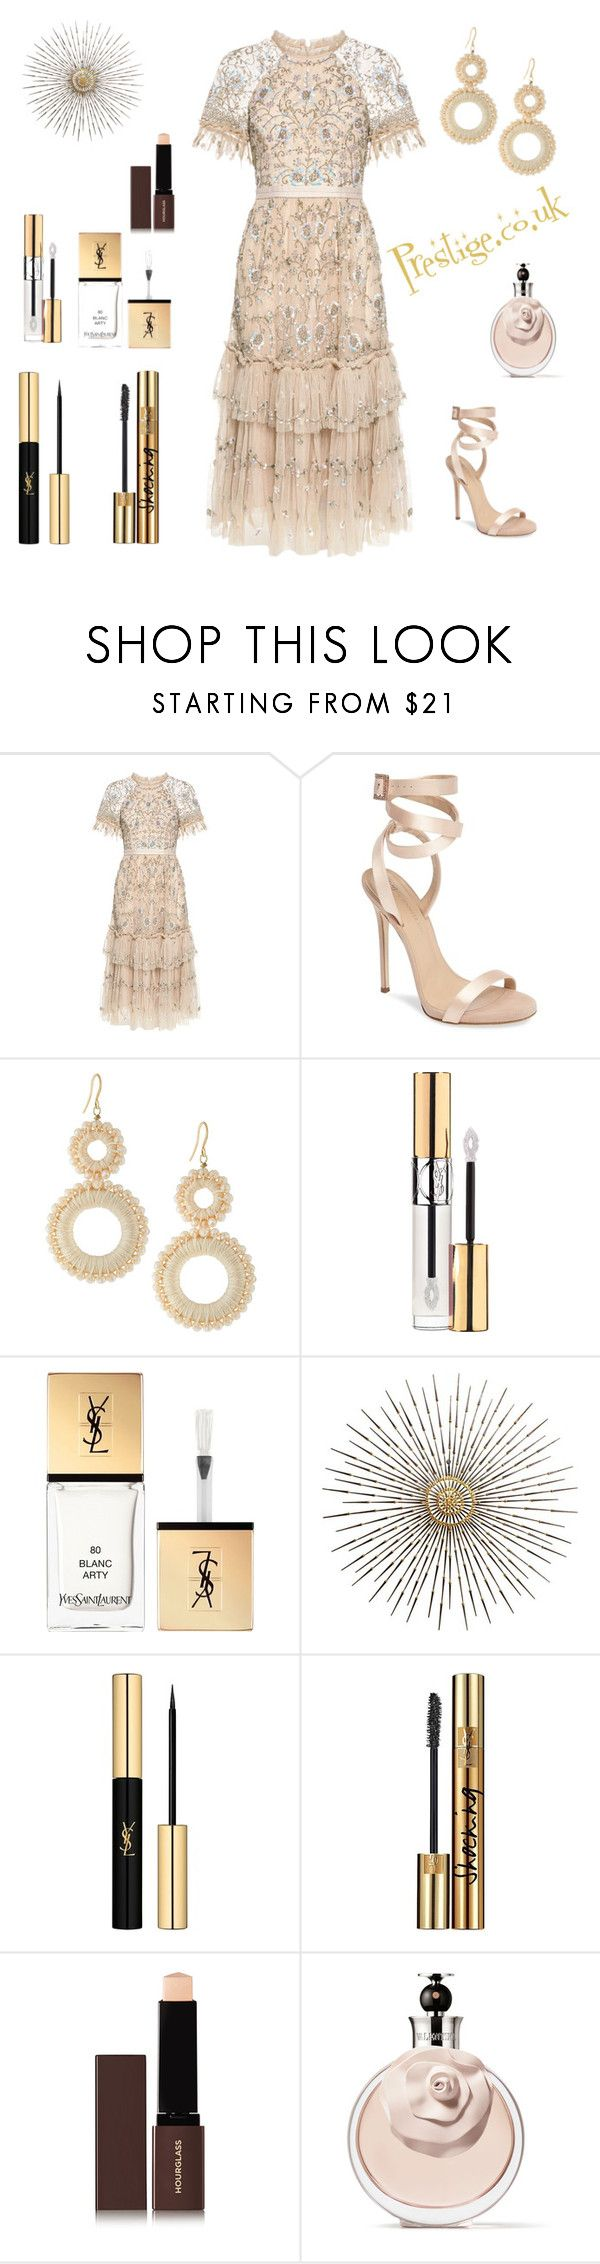 """Prestige.co.uk"" by zainabswaidan ❤ liked on Polyvore featuring beauty, Needle & Thread, Giuseppe Zanotti, Lydell NYC, Yves Saint Laurent, Hourglass Cosmetics and Valentino"